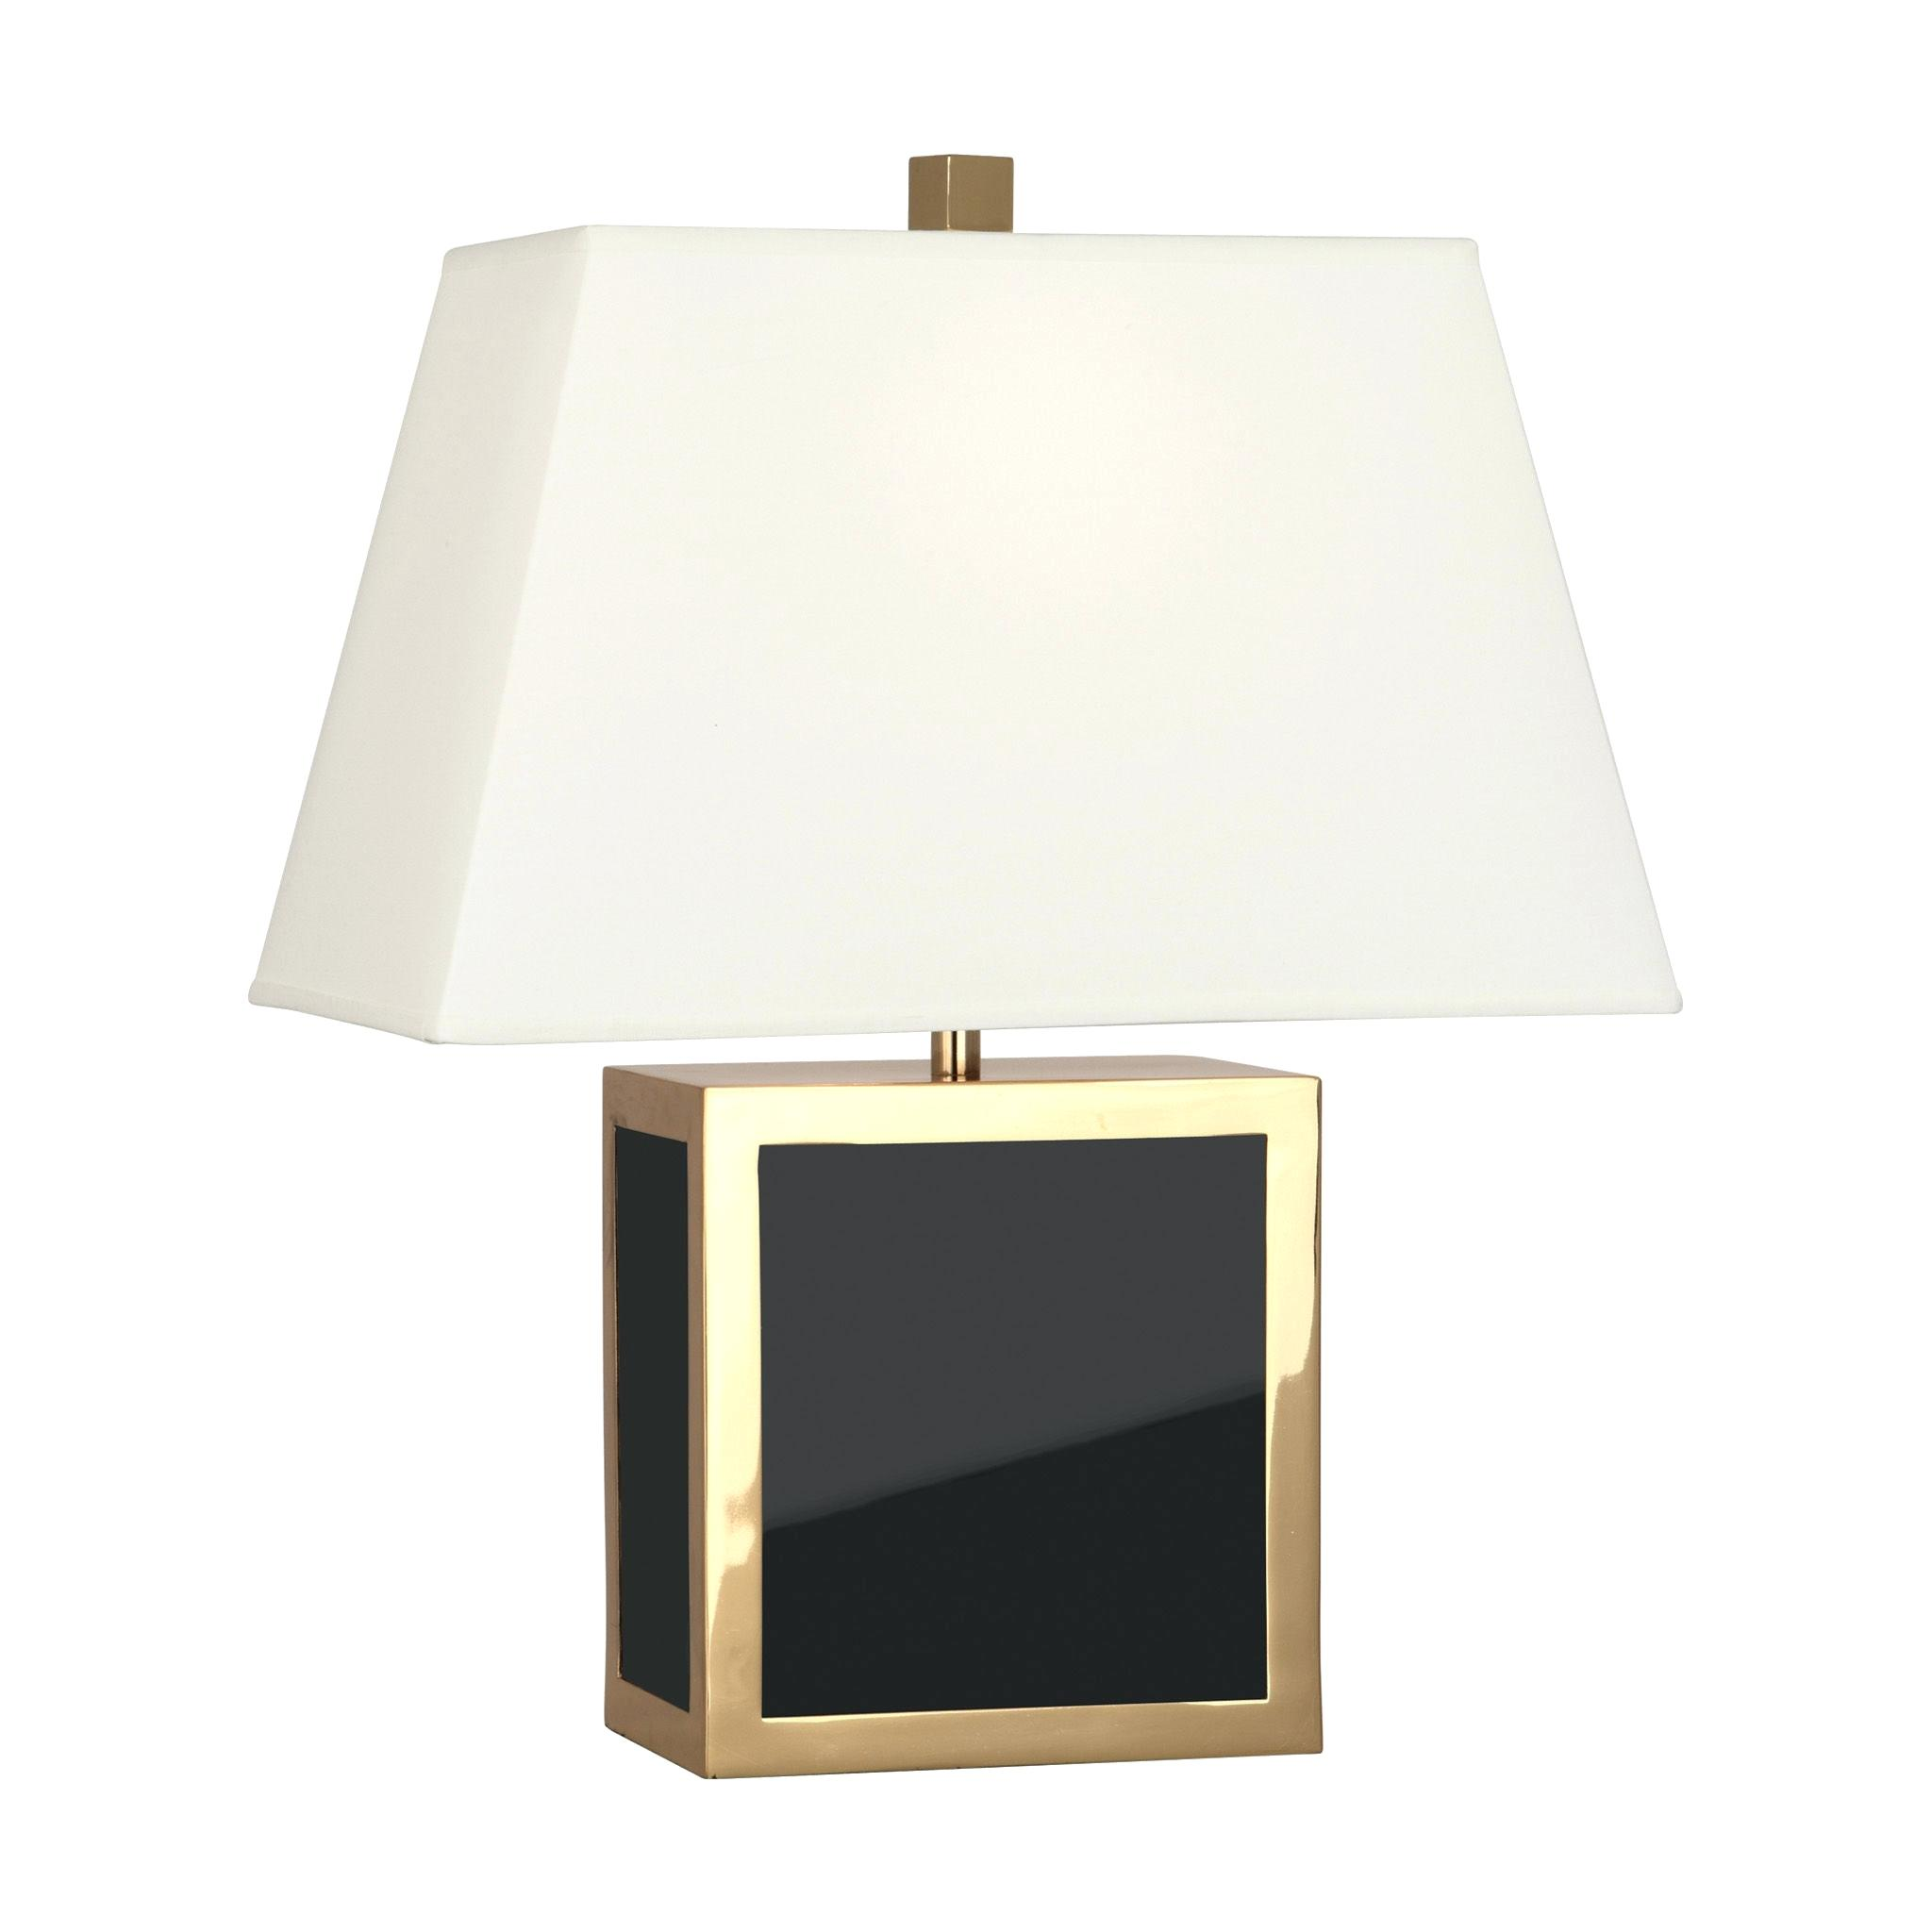 accent table lamps small lamp stunning alt black half moon console college dorm ping west elm white and wood coffee for corner oriental shade pier one build glass bedroom gallerie